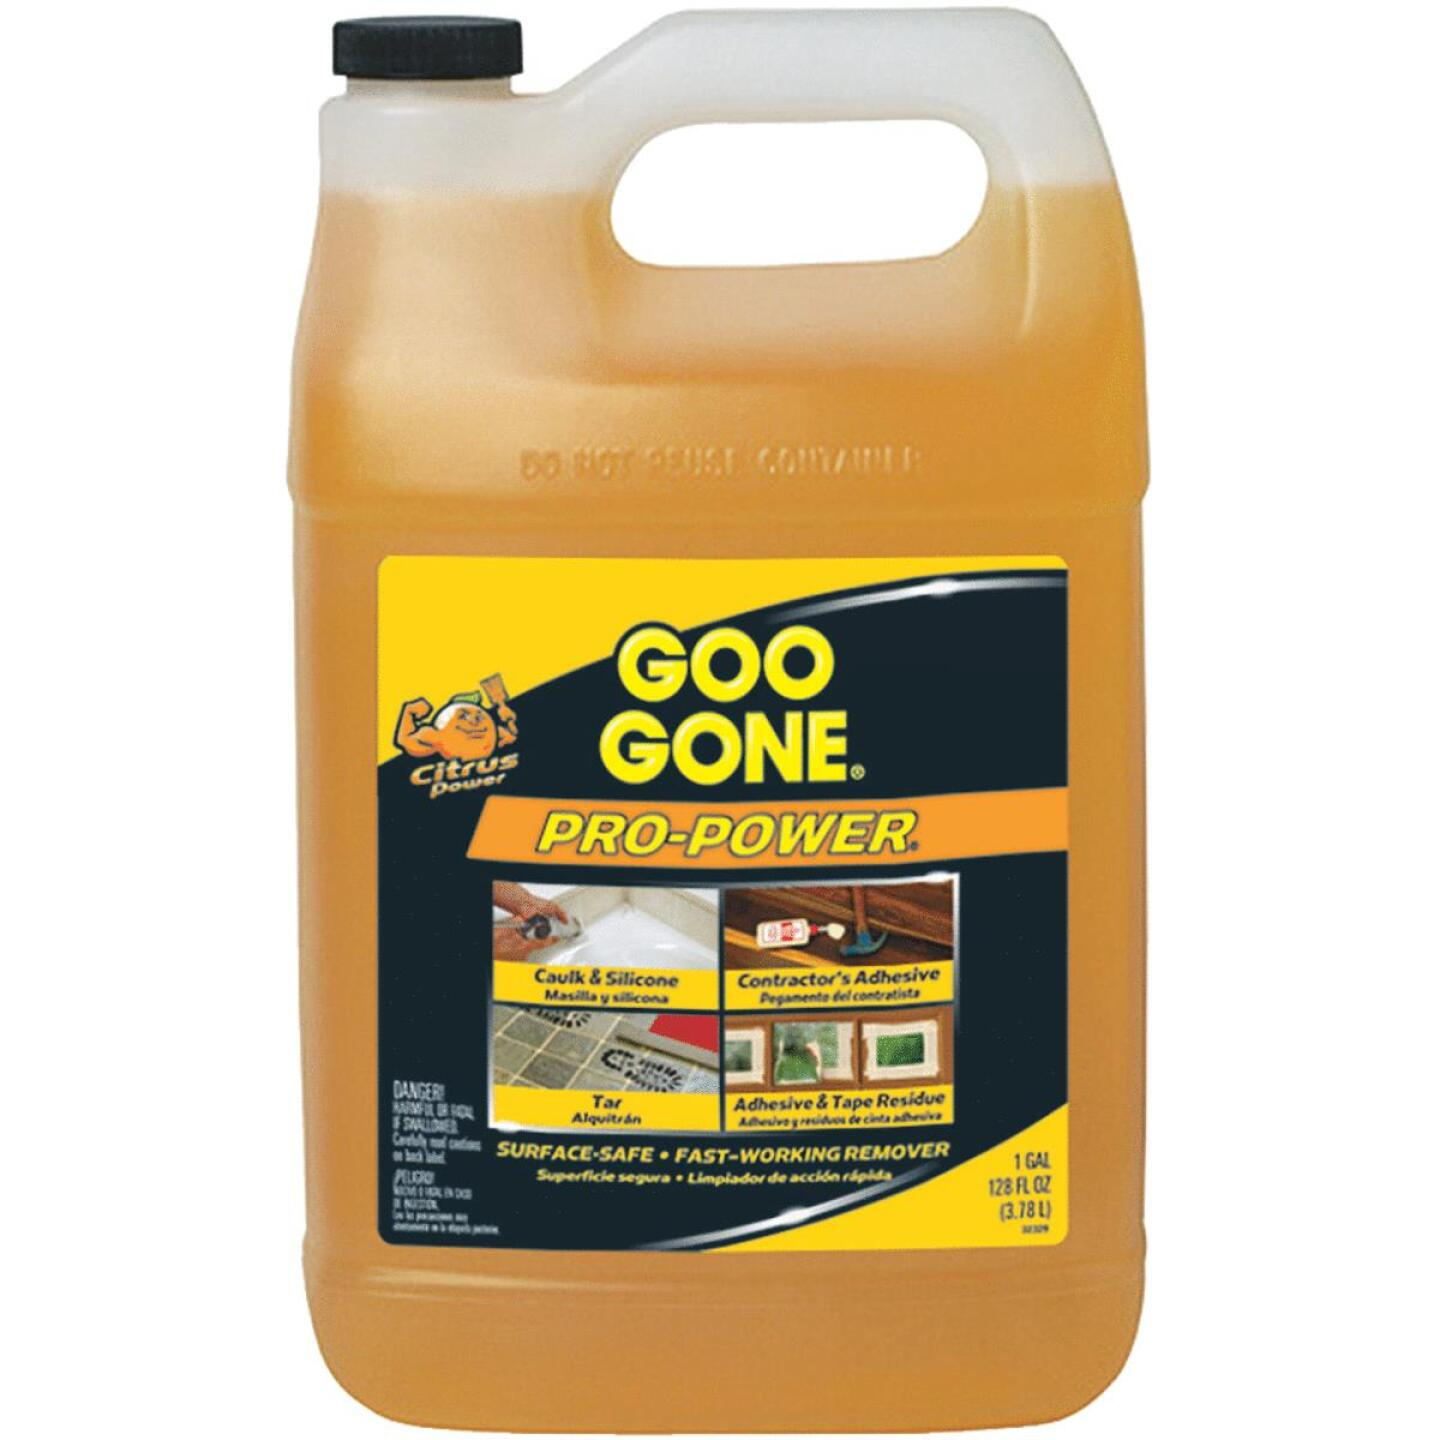 Goo Gone 1 Gal. Pro-Power Adhesive Remover Image 267